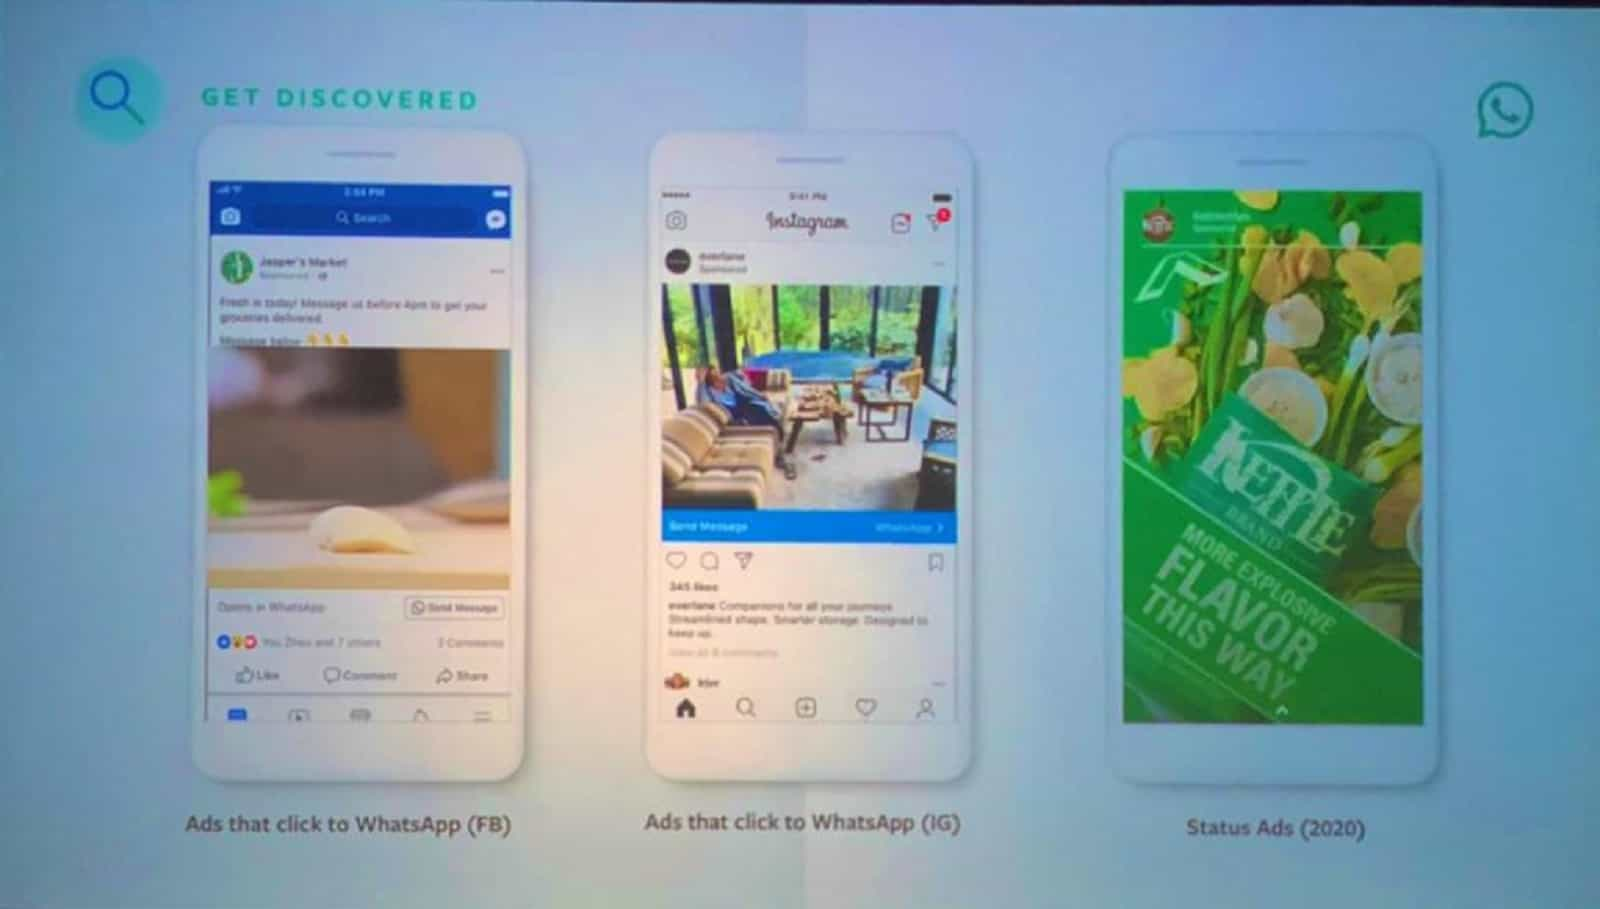 WhatsApp New Features and Status Ads 1